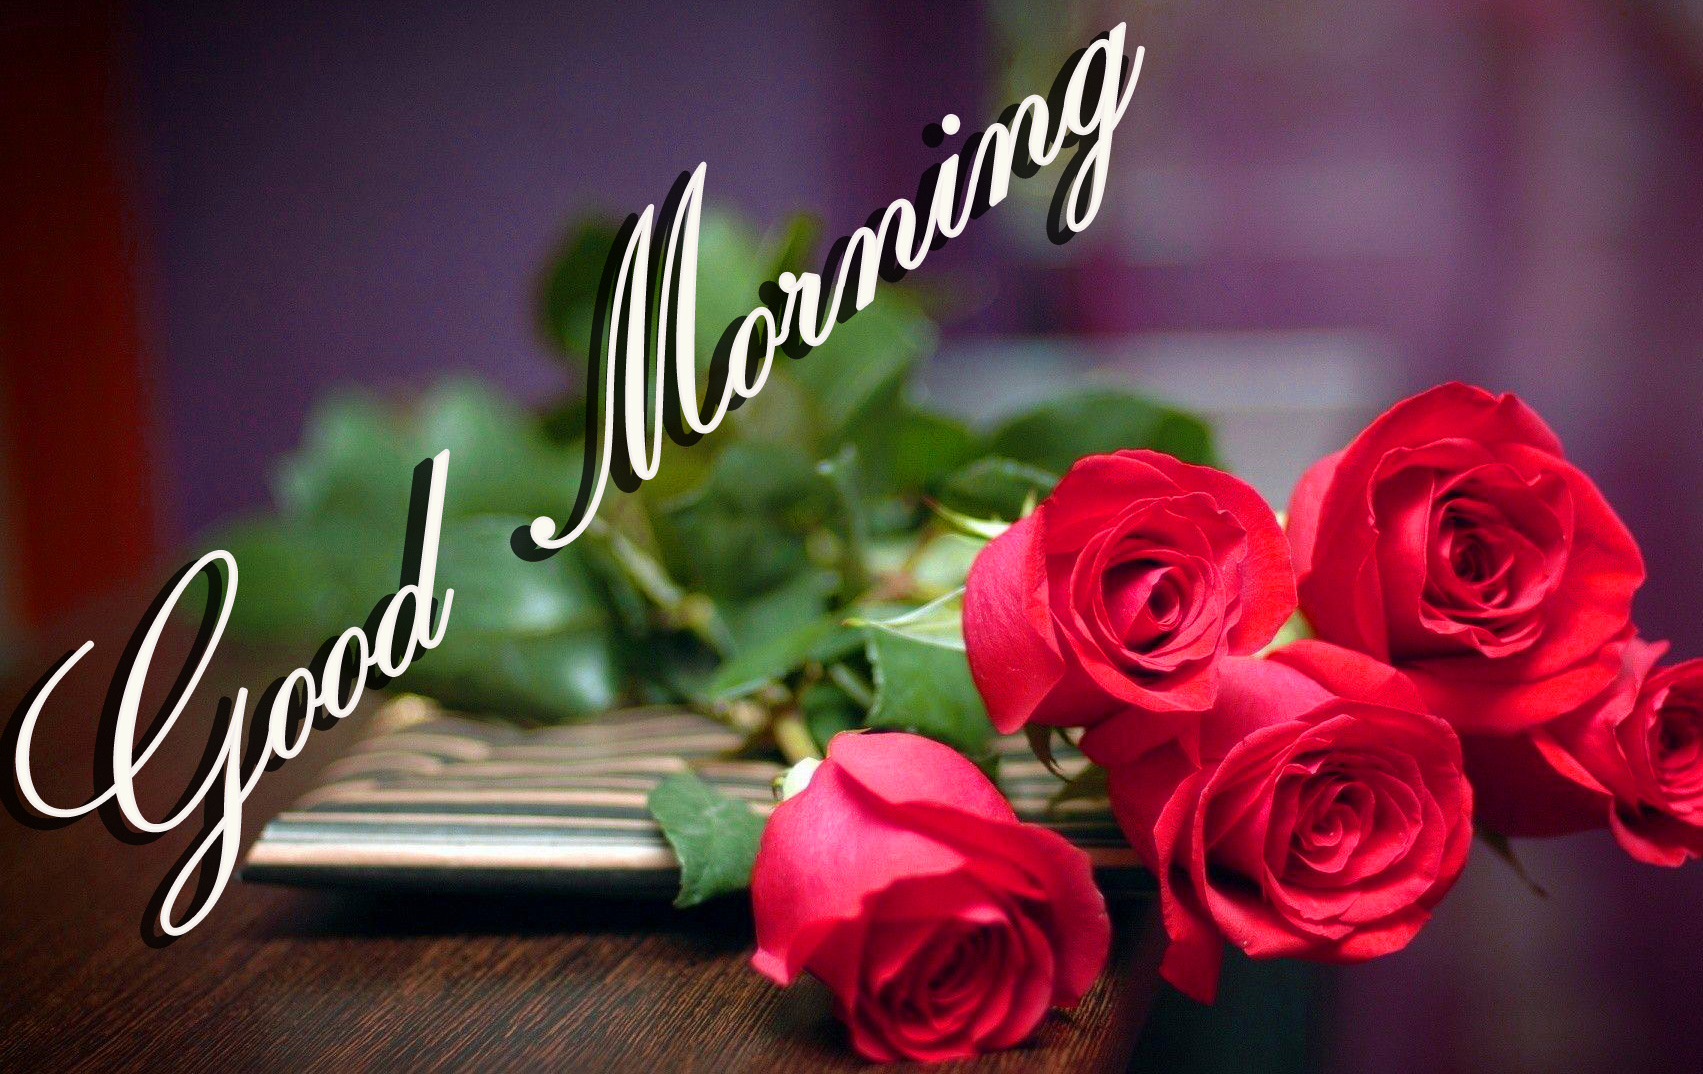 Good Morning Images Wallpaper Pics HD Download With Red Rose for Girlfriend